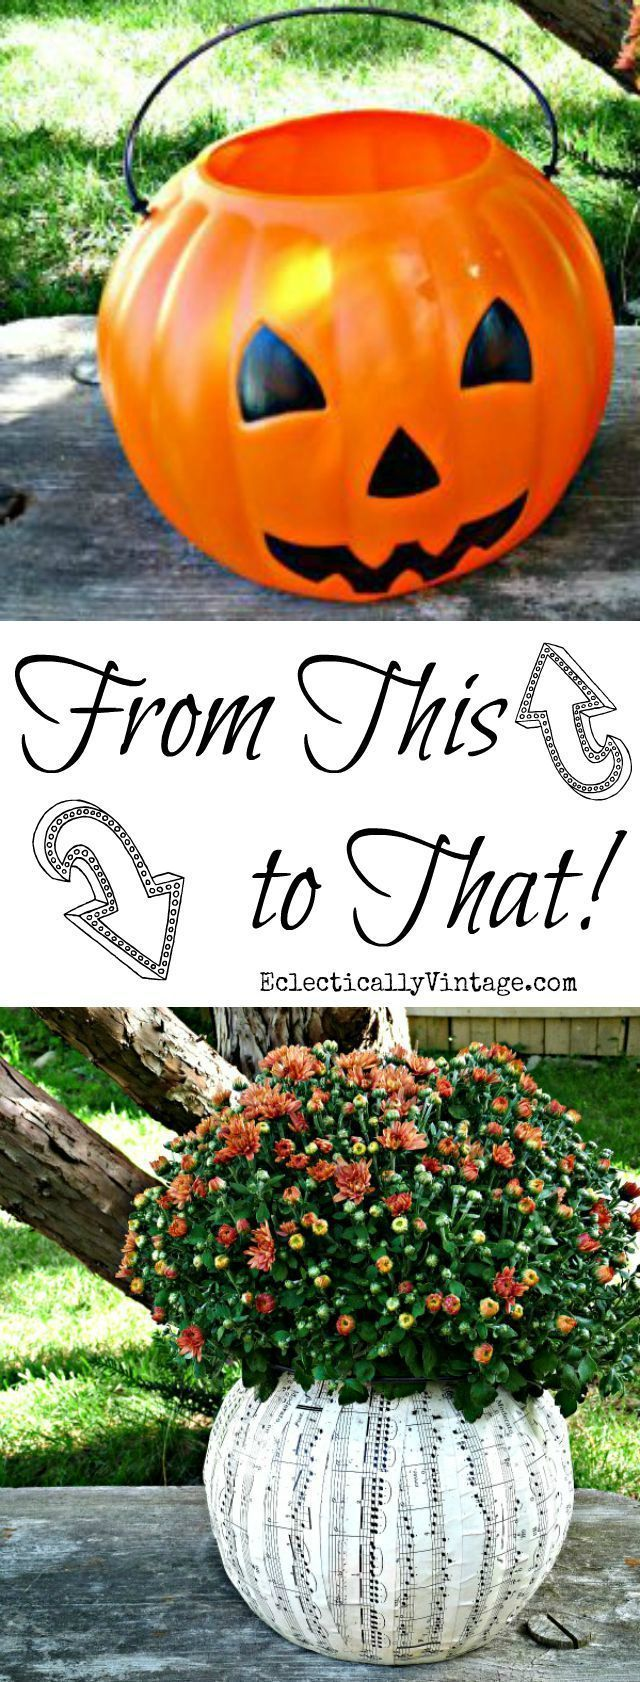 Plastic Pumpkin Ideas - turn an ugly plastic pumpkin pail into a fun planter - step by step directions plus more creative pumpkin ideas! http://eclecticallyvintage.com